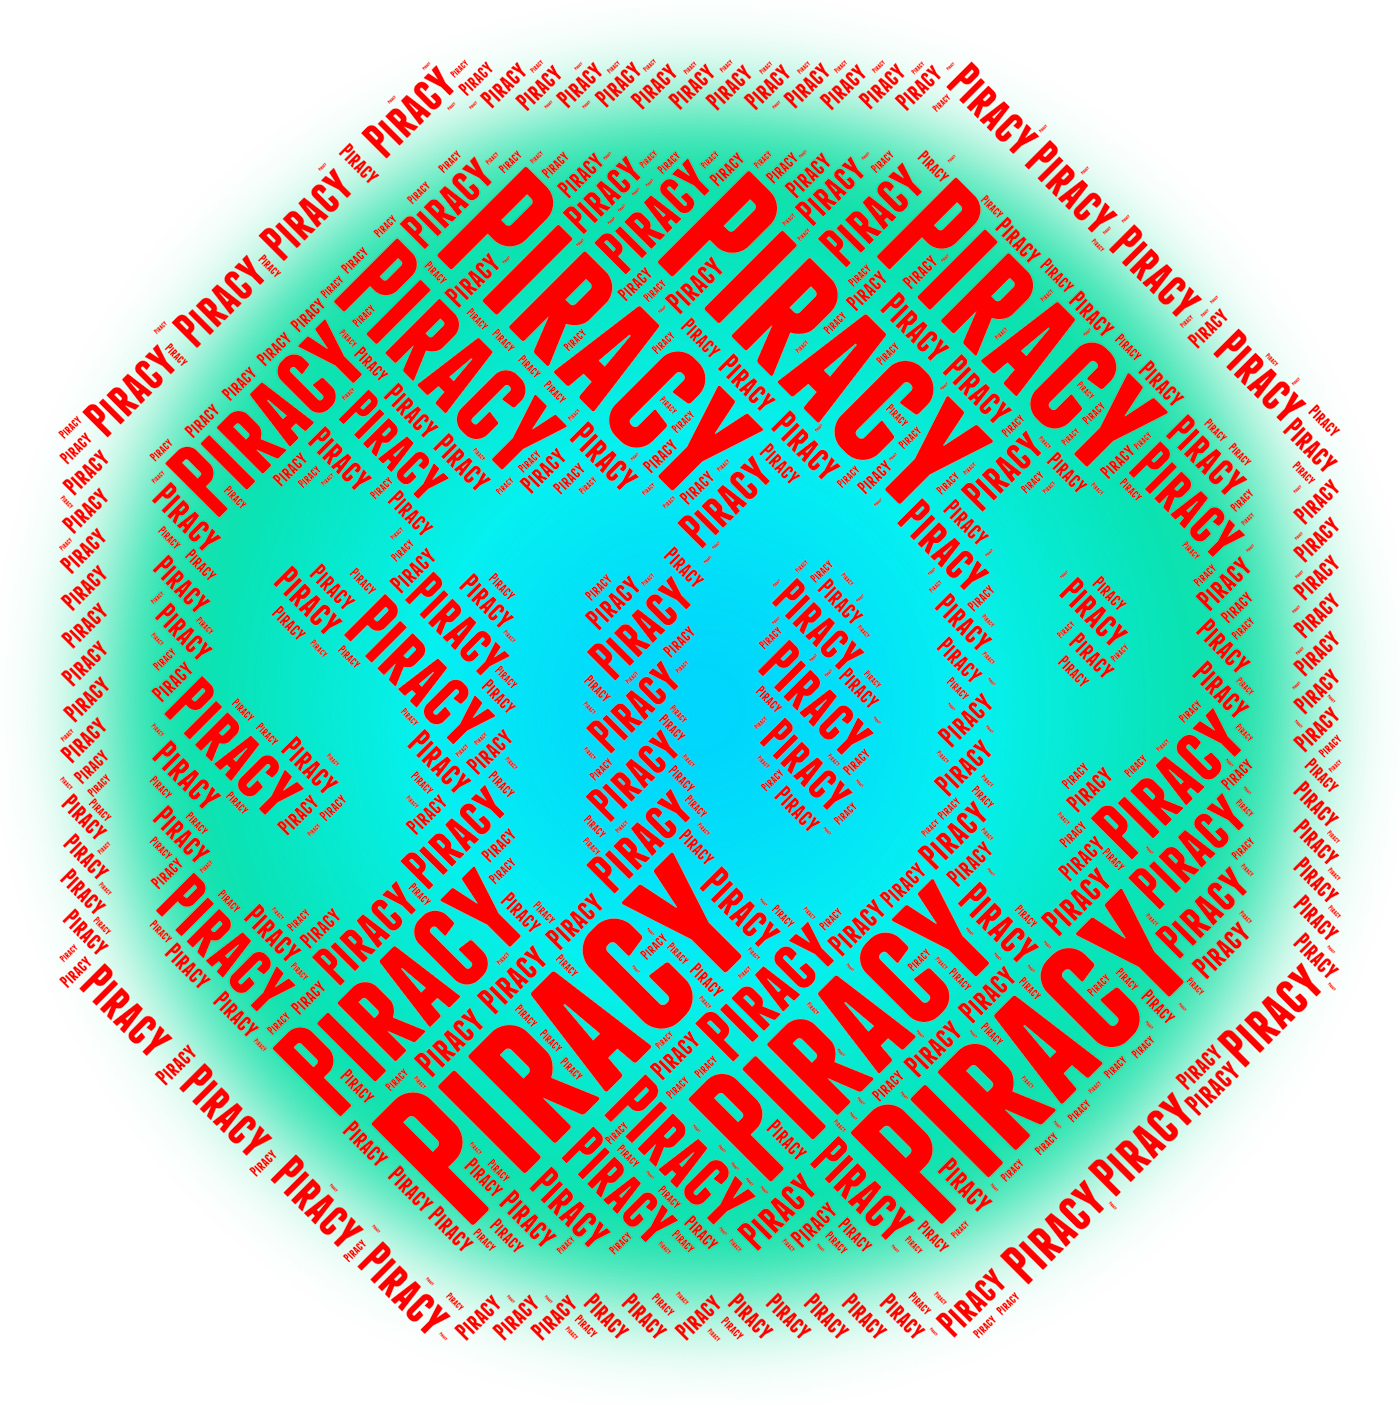 Stop piracy indicates copy right and control photo